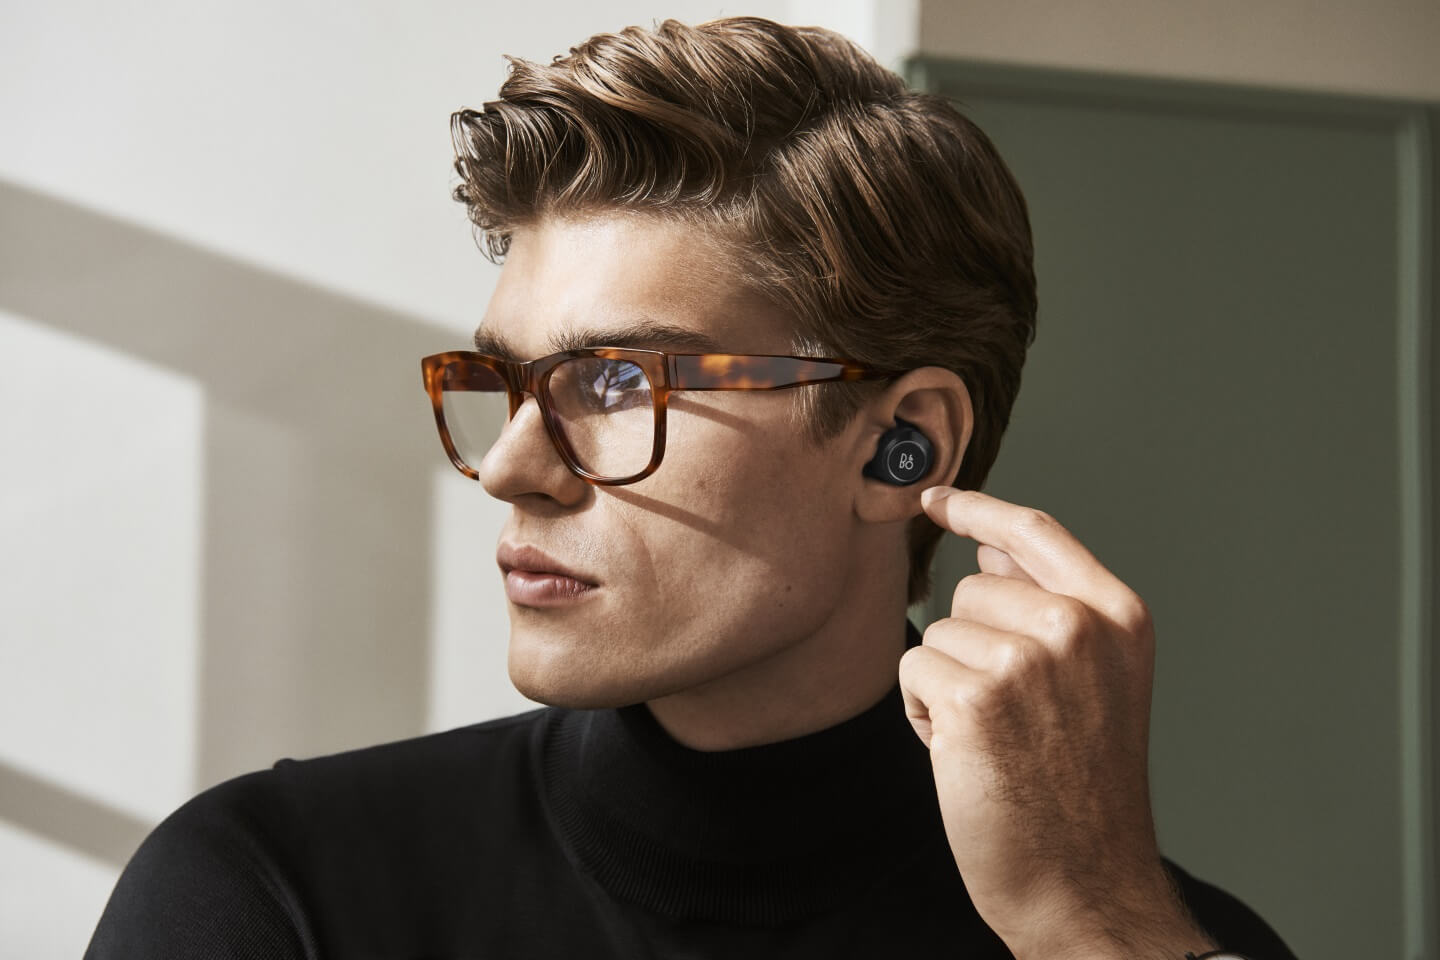 BeoPlay E8 - in-ear headphones